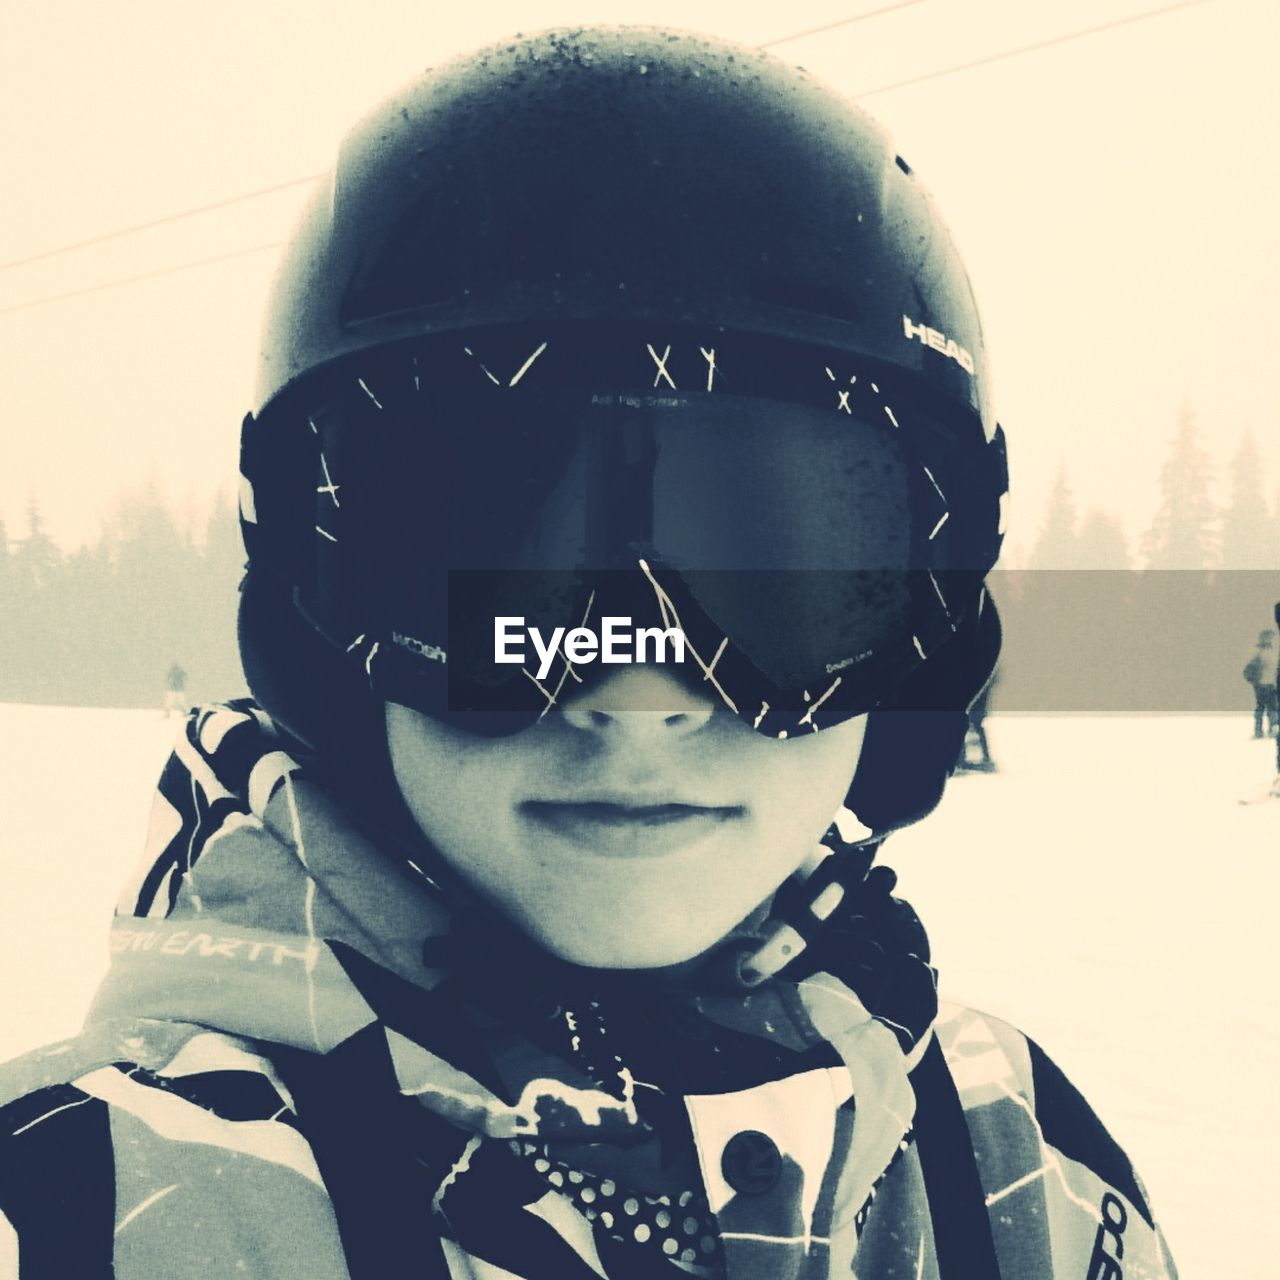 helmet, front view, headwear, portrait, one person, headshot, sports helmet, childhood, real people, crash helmet, looking at camera, leisure activity, boys, cold temperature, adventure, day, outdoors, snow, elementary age, sports clothing, lifestyles, close-up, ski goggles, winter, warm clothing, army helmet, sky, cycling helmet, people